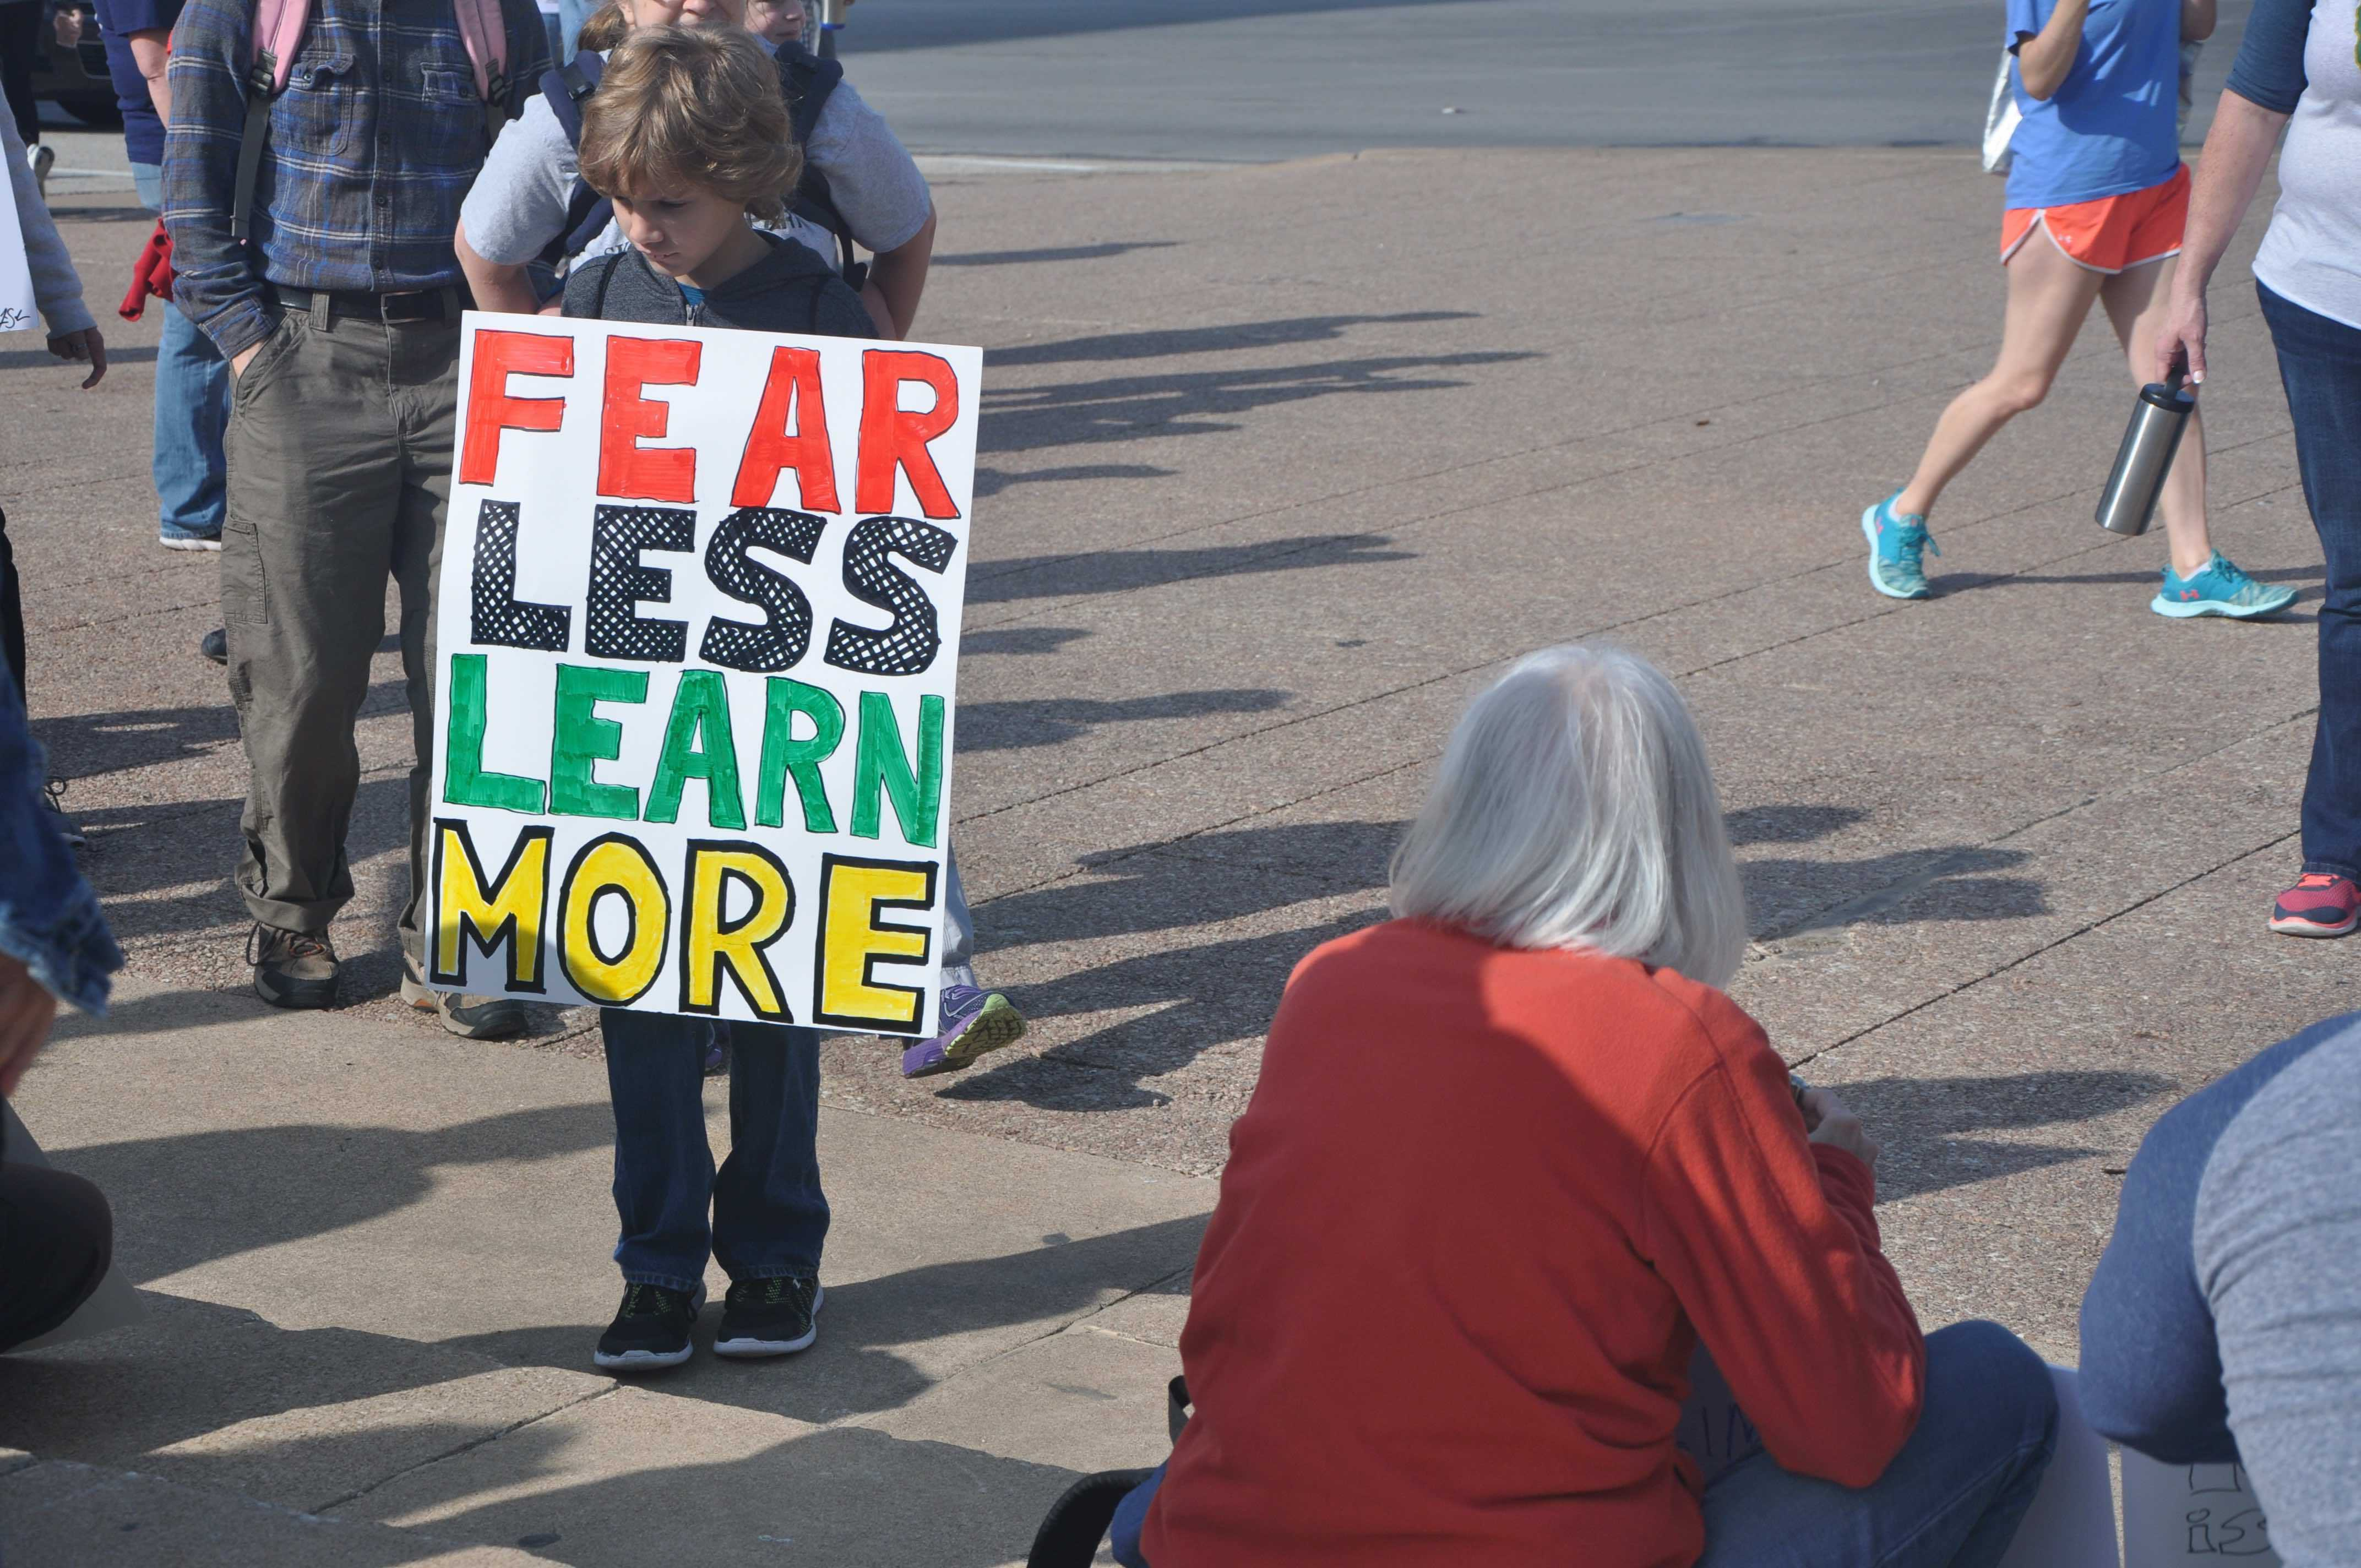 A+boy+holds+a+sign+up+before+the+March+for+Science+in+front+of+Dallas+City+Hall+on+Saturday.+The+march+began+at+Dallas+City+Hall+and+ended+at+Earth+Day+TX+at+Fair+Park.